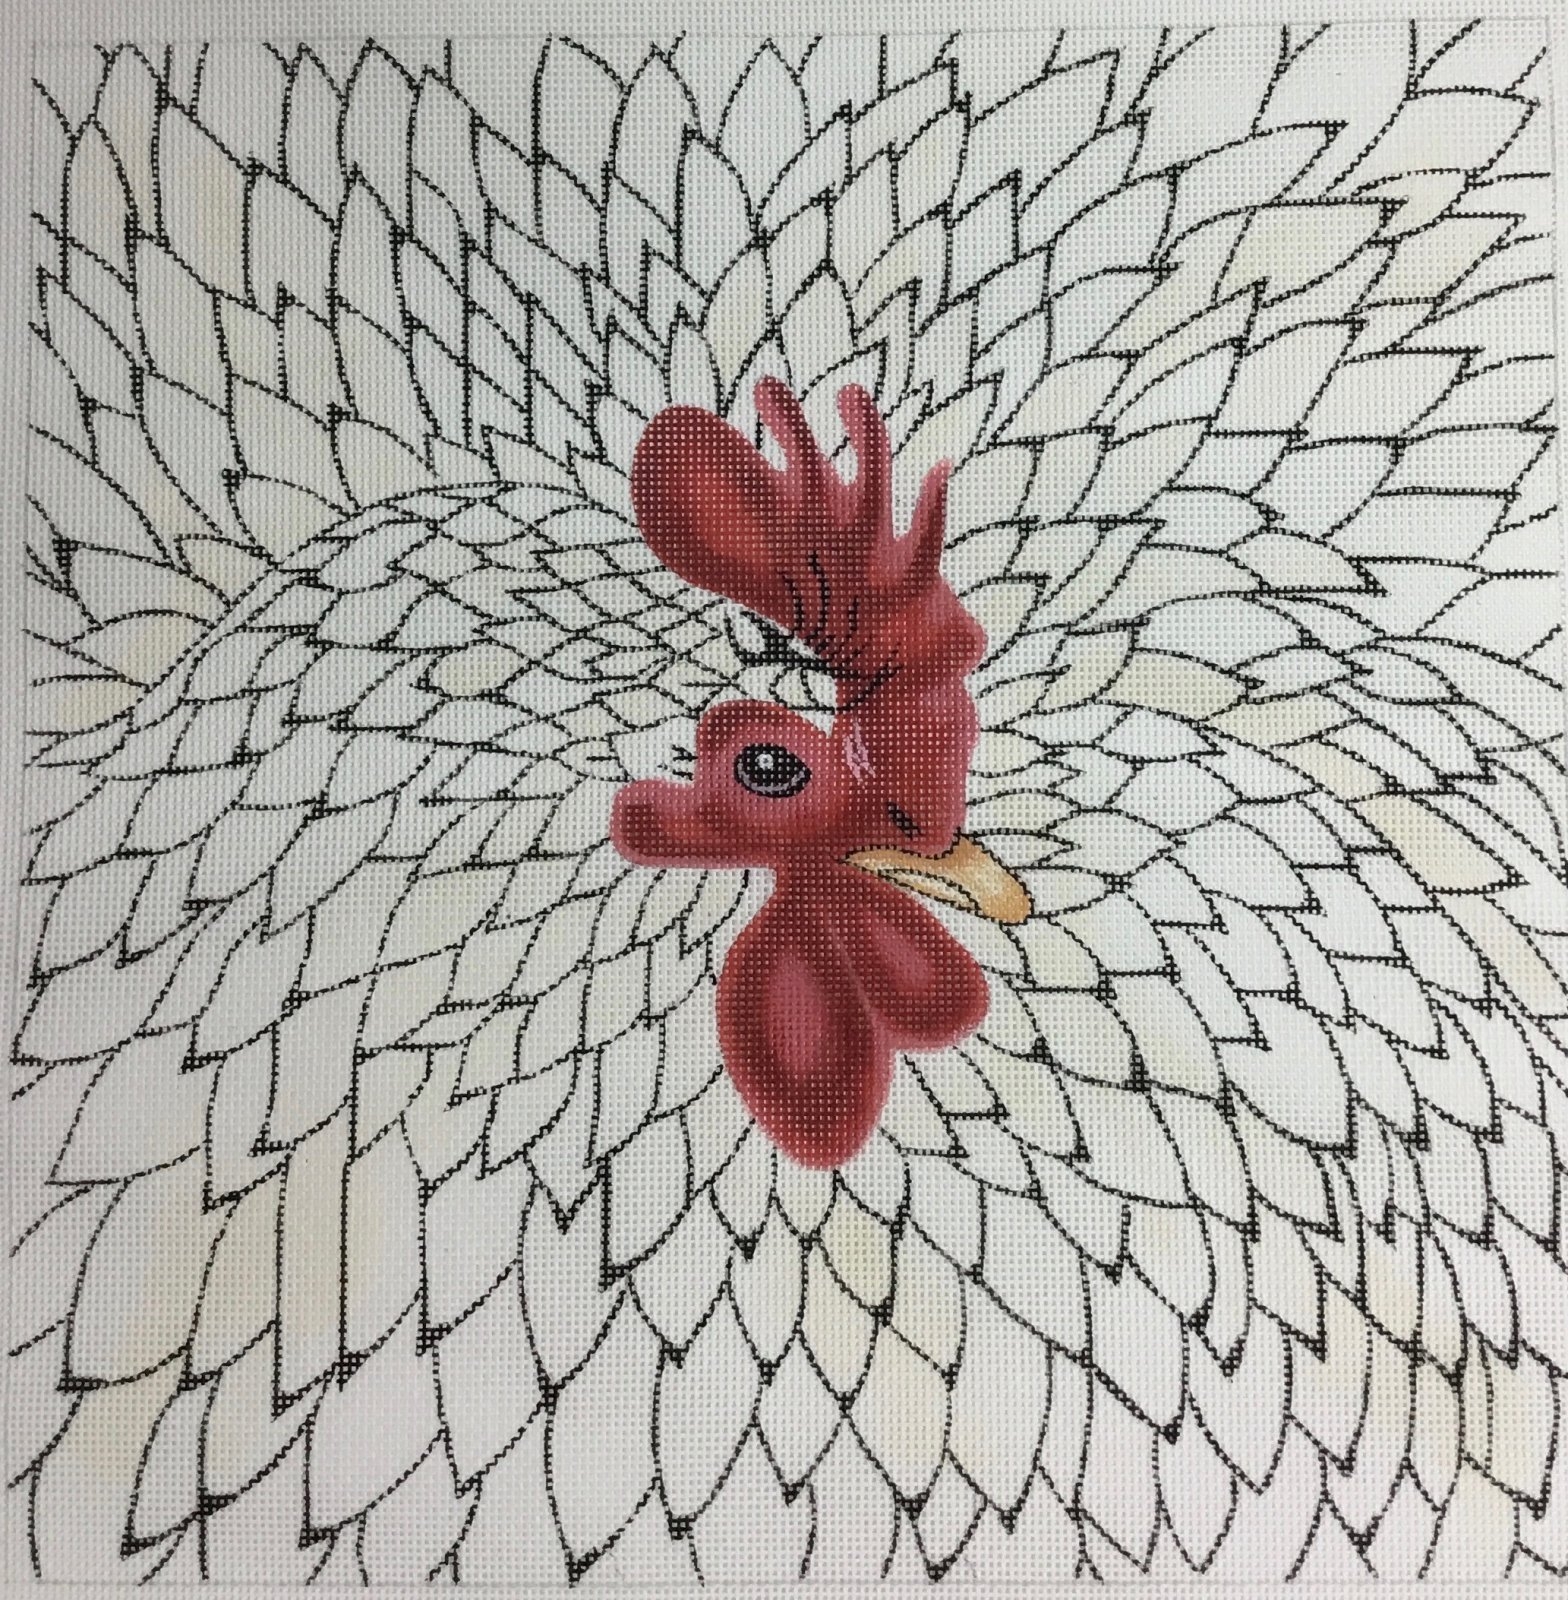 No Name Chicken, 13M, 14.5x14.5